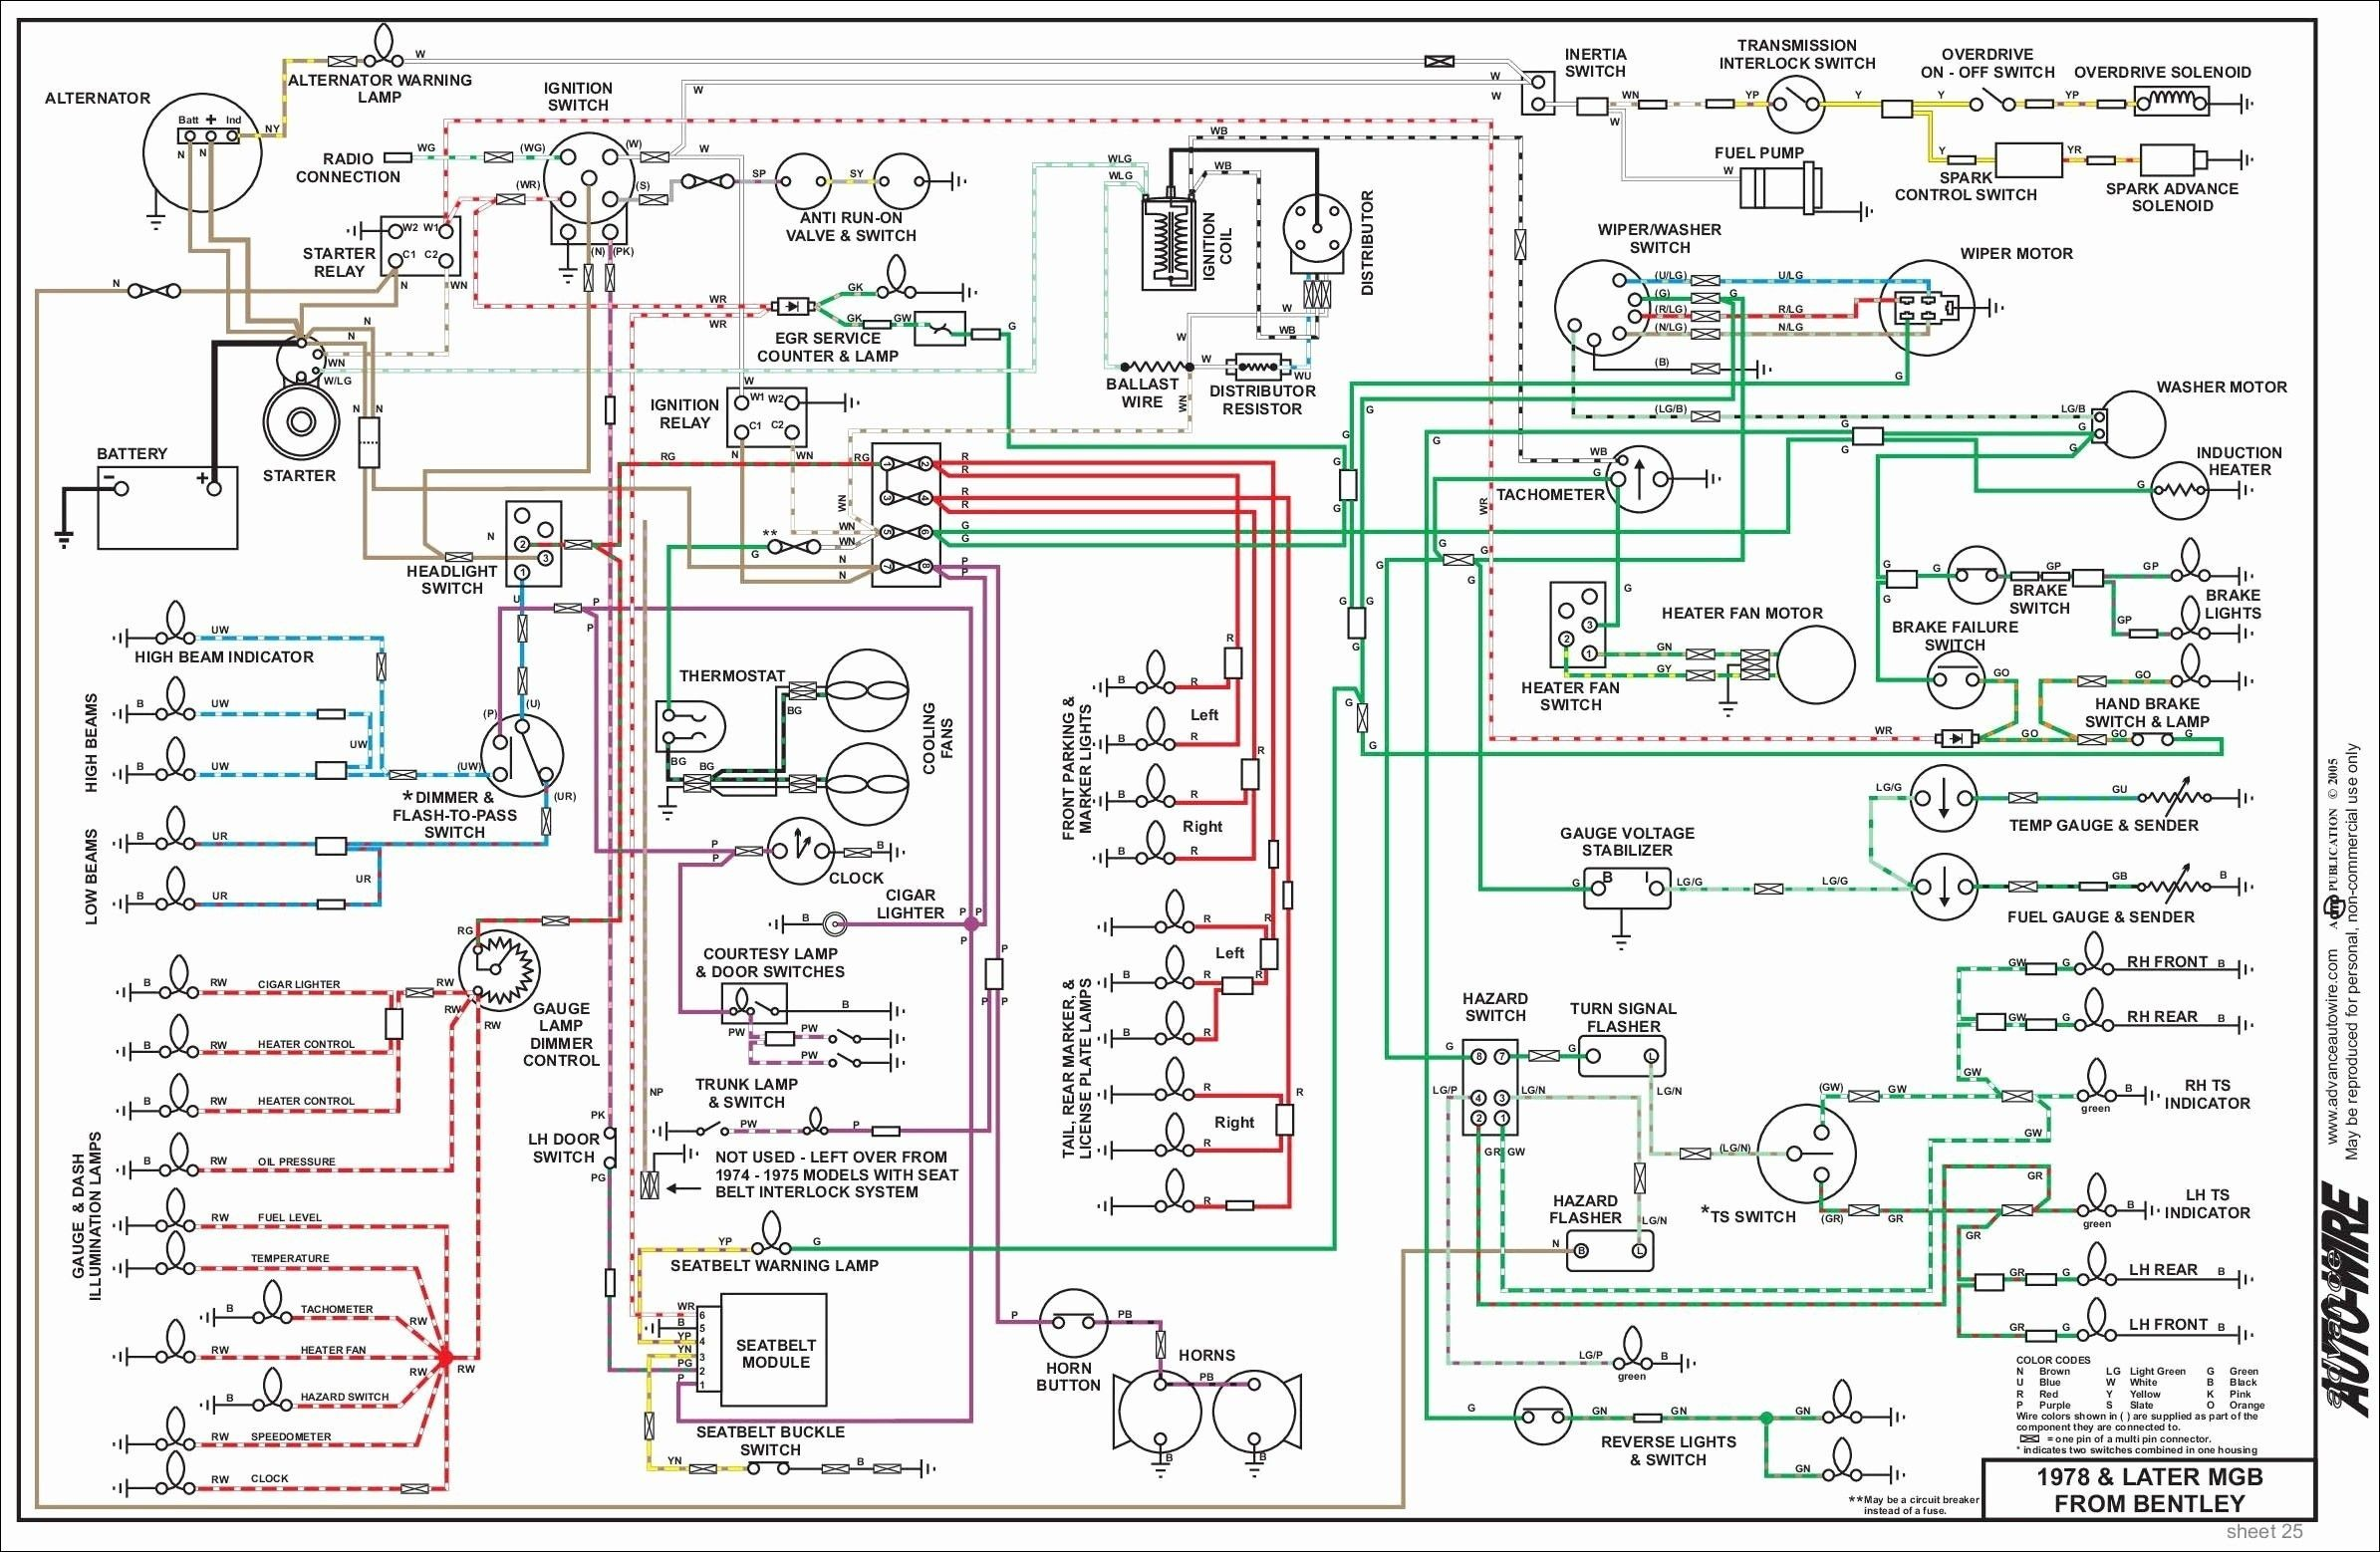 2004 Chevy Tail Light Electrical Diagram New Vans Aircraft Wiring Diagram Diagramsample Of 2004 Chevy Tail Light Electrical Diagram